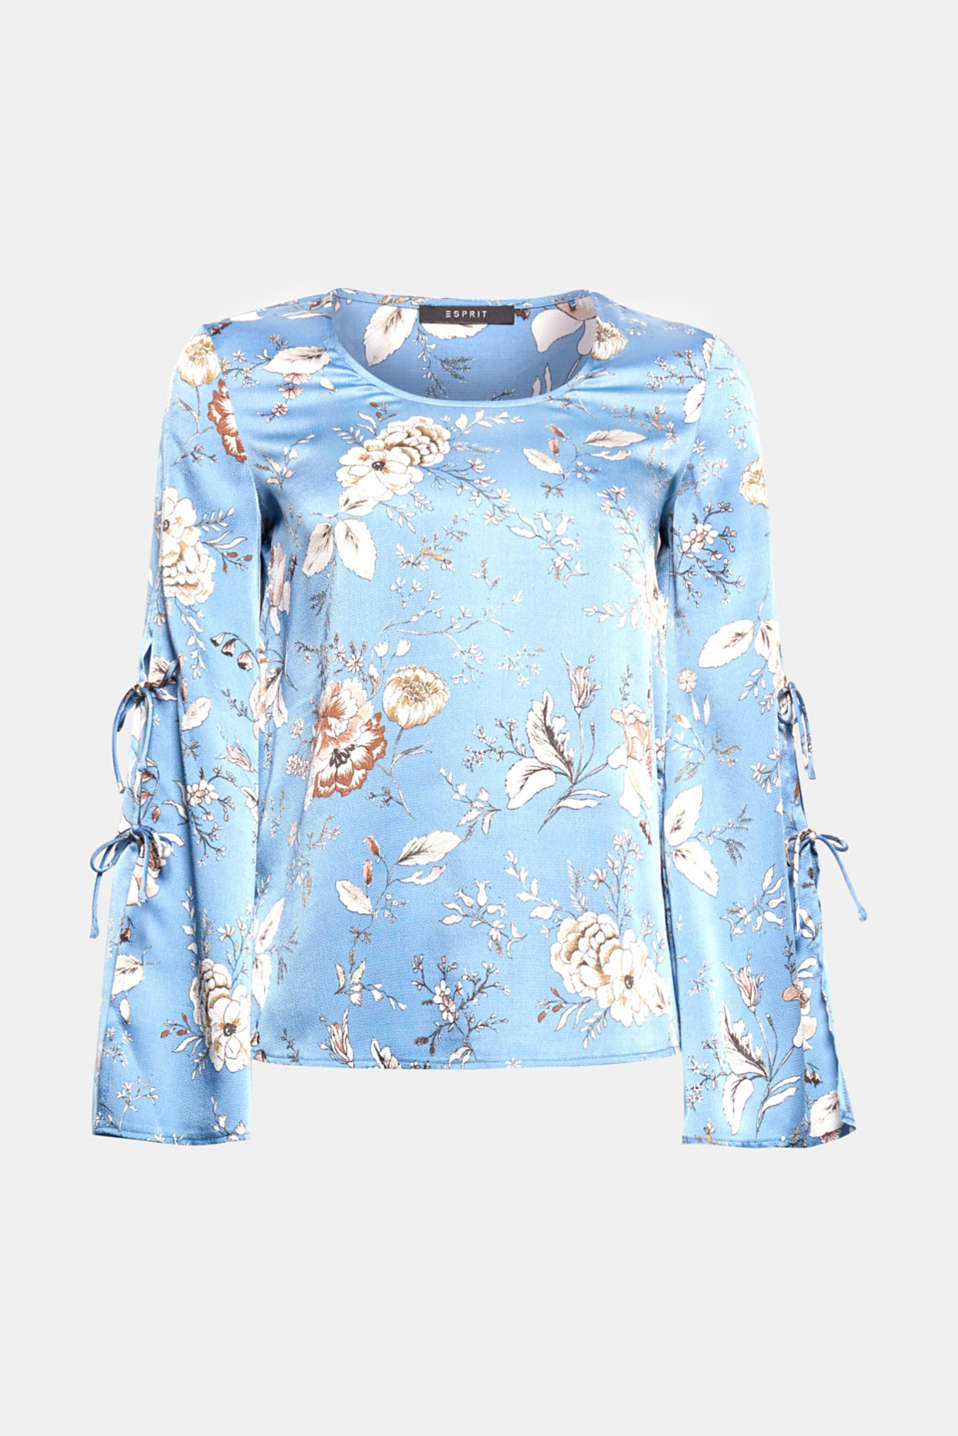 The three-quarter length bell sleeves are decoratively highlighted by bow-fastening ties on this printed blouse.